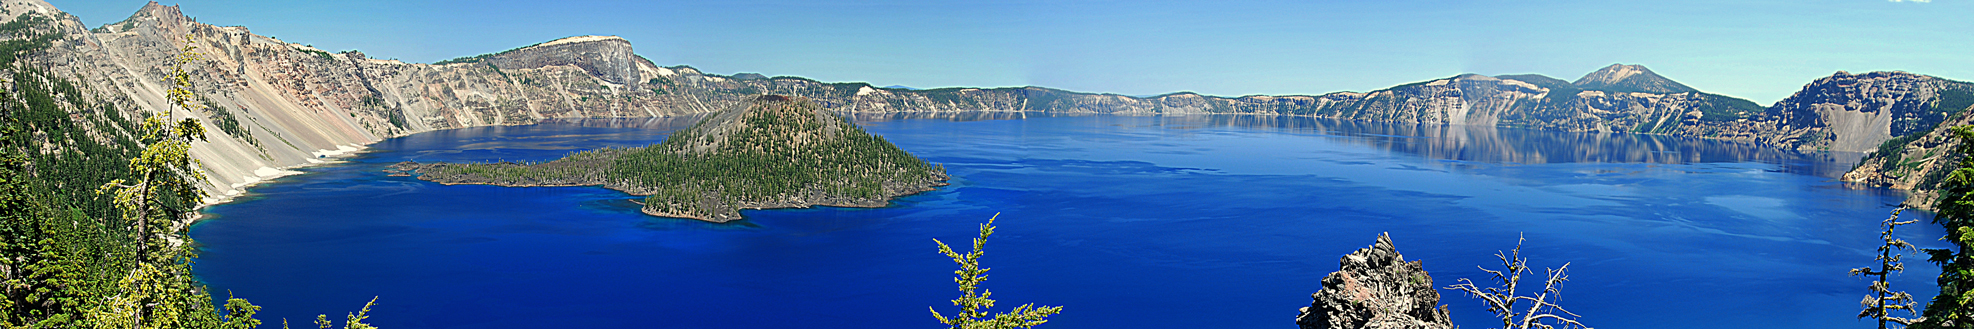 Crater-Lake-Summer-Spring-Tours